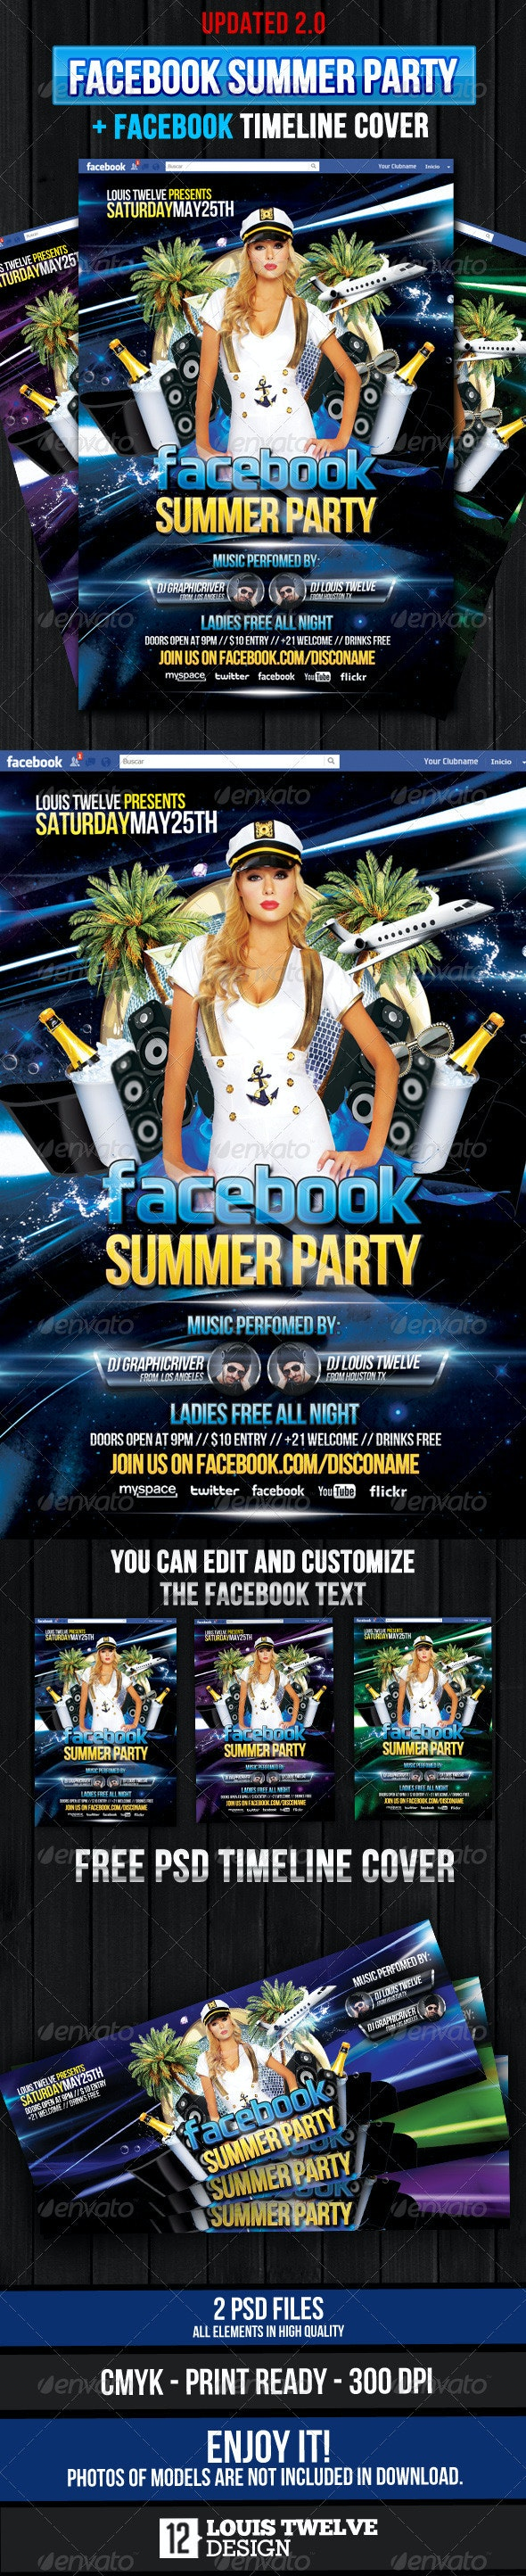 Facebook Summer Party - Flyer + Fb Timeline - Clubs & Parties Events